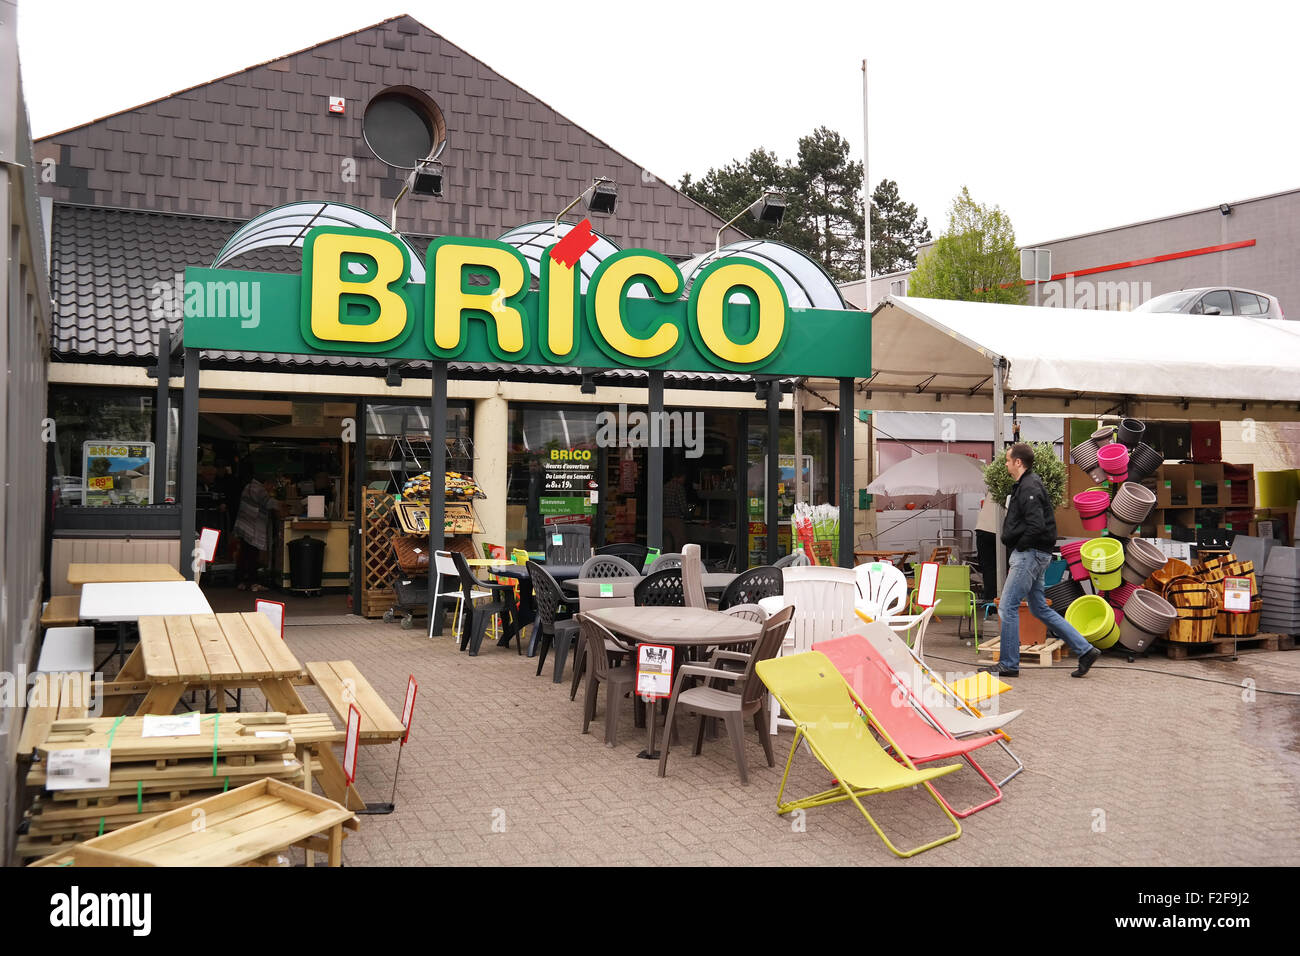 Branch of brico do it yourself store stock photo 87617994 alamy branch of brico do it yourself store solutioingenieria Images